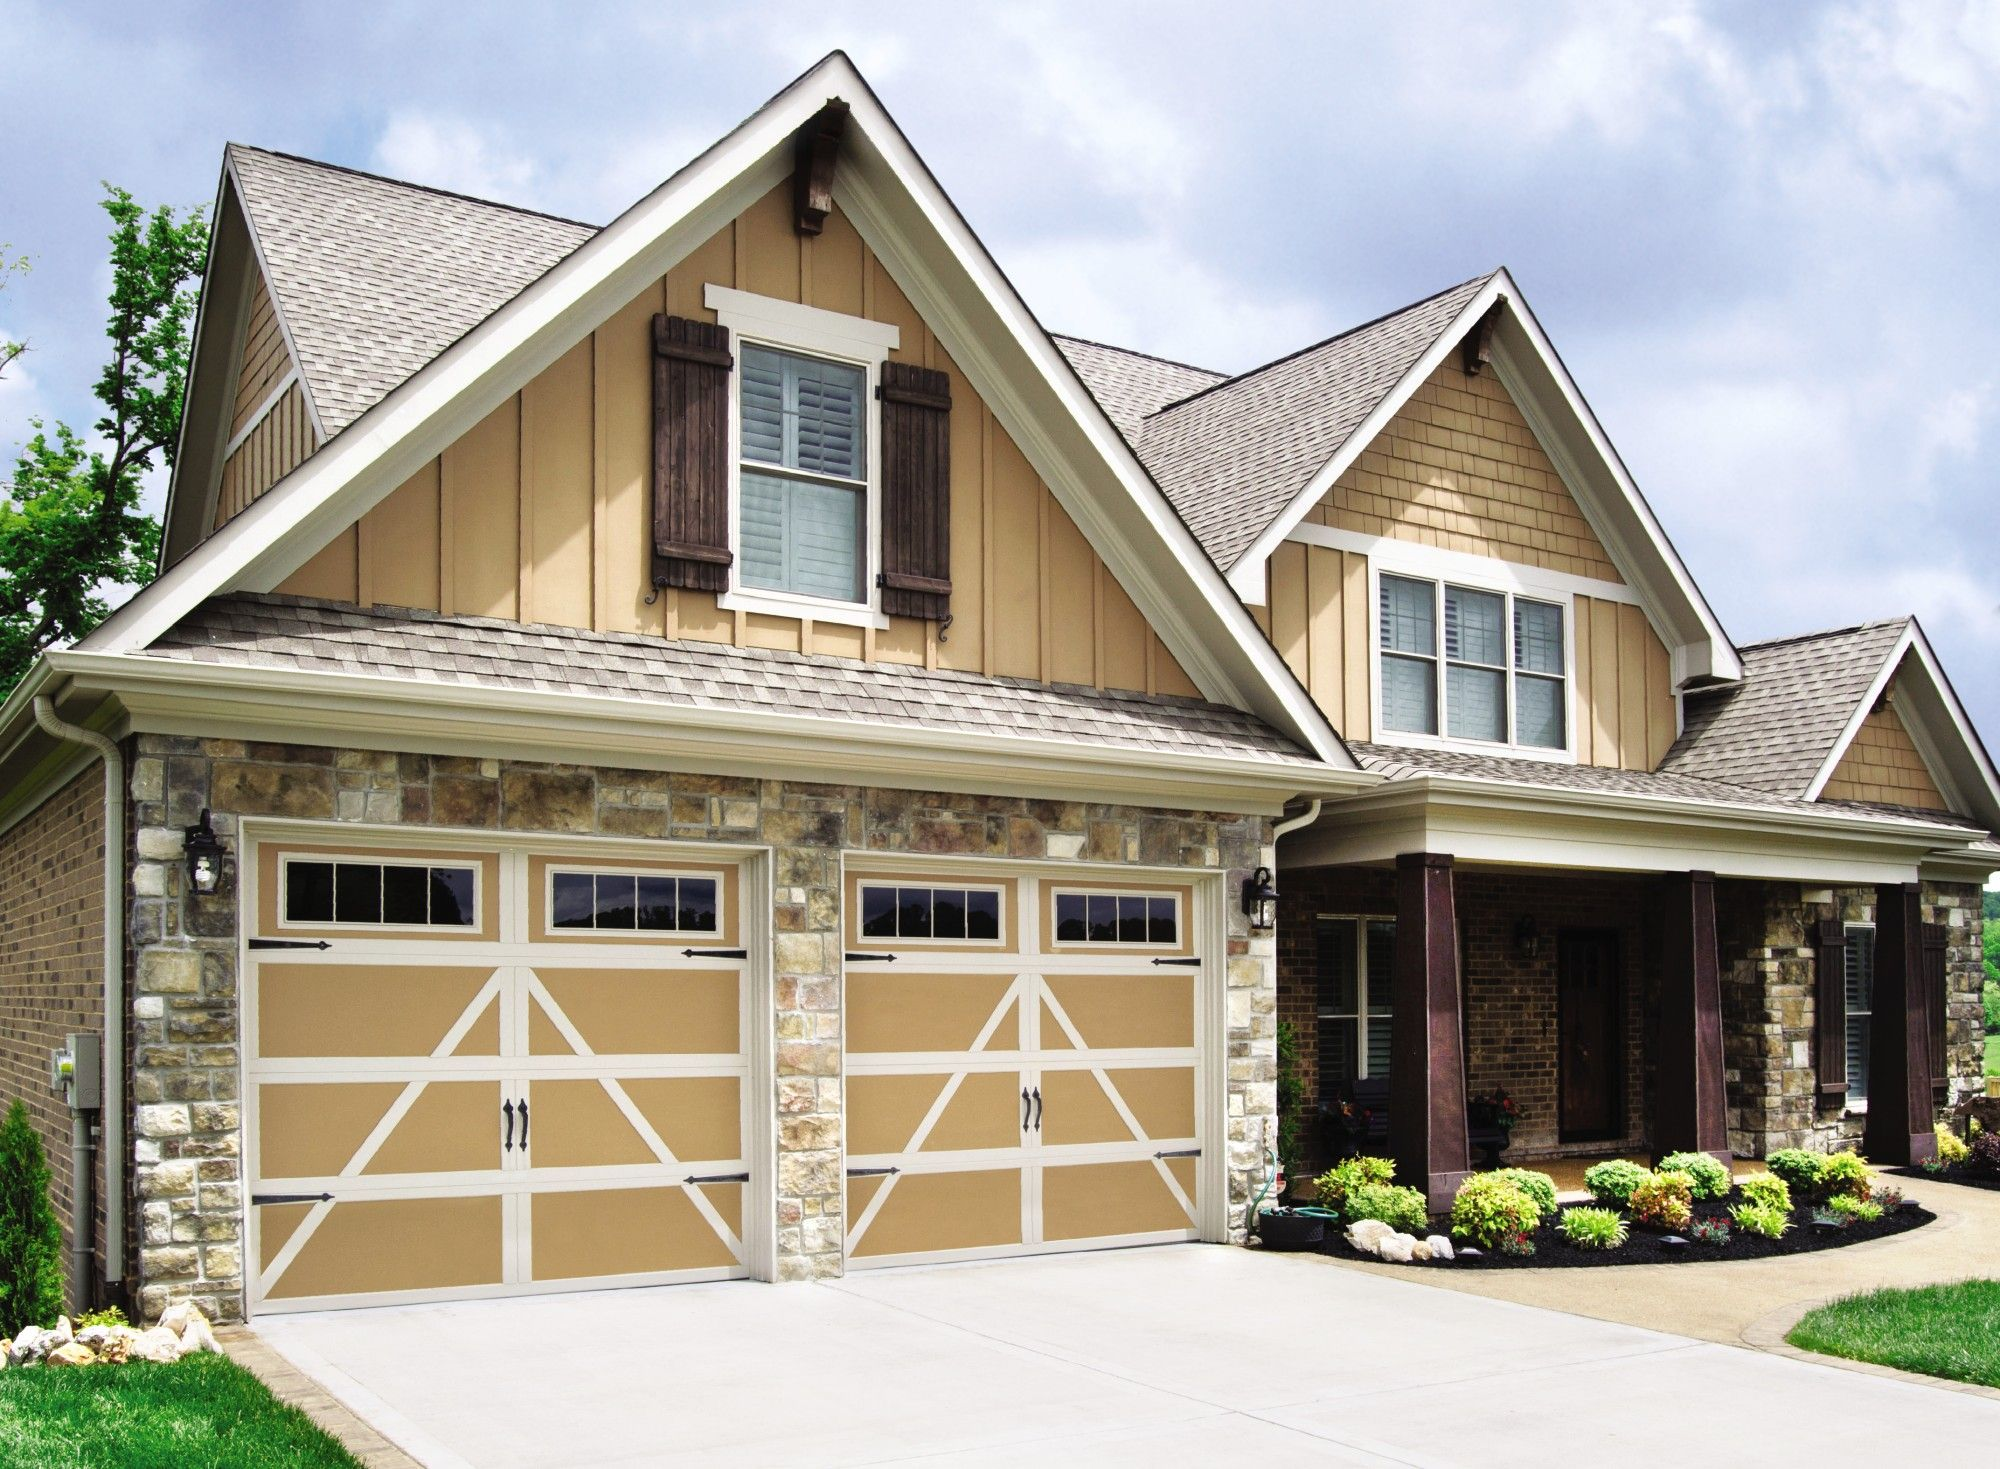 Garage doors from wayne dalton model 9405 is a carriage Italian garage doors